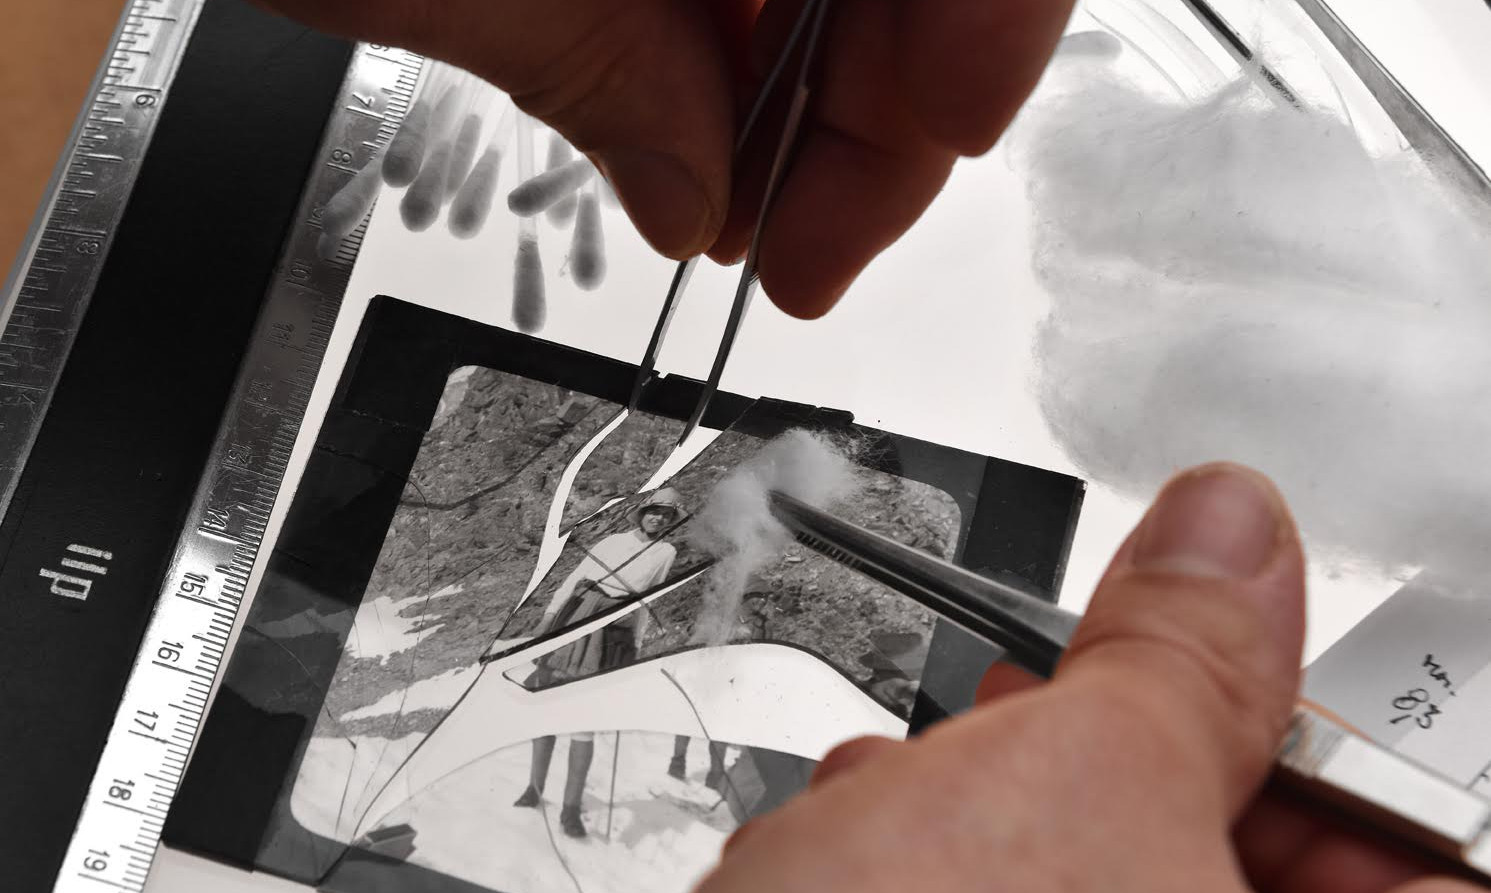 Handmade restoration of exceptional photo negatives